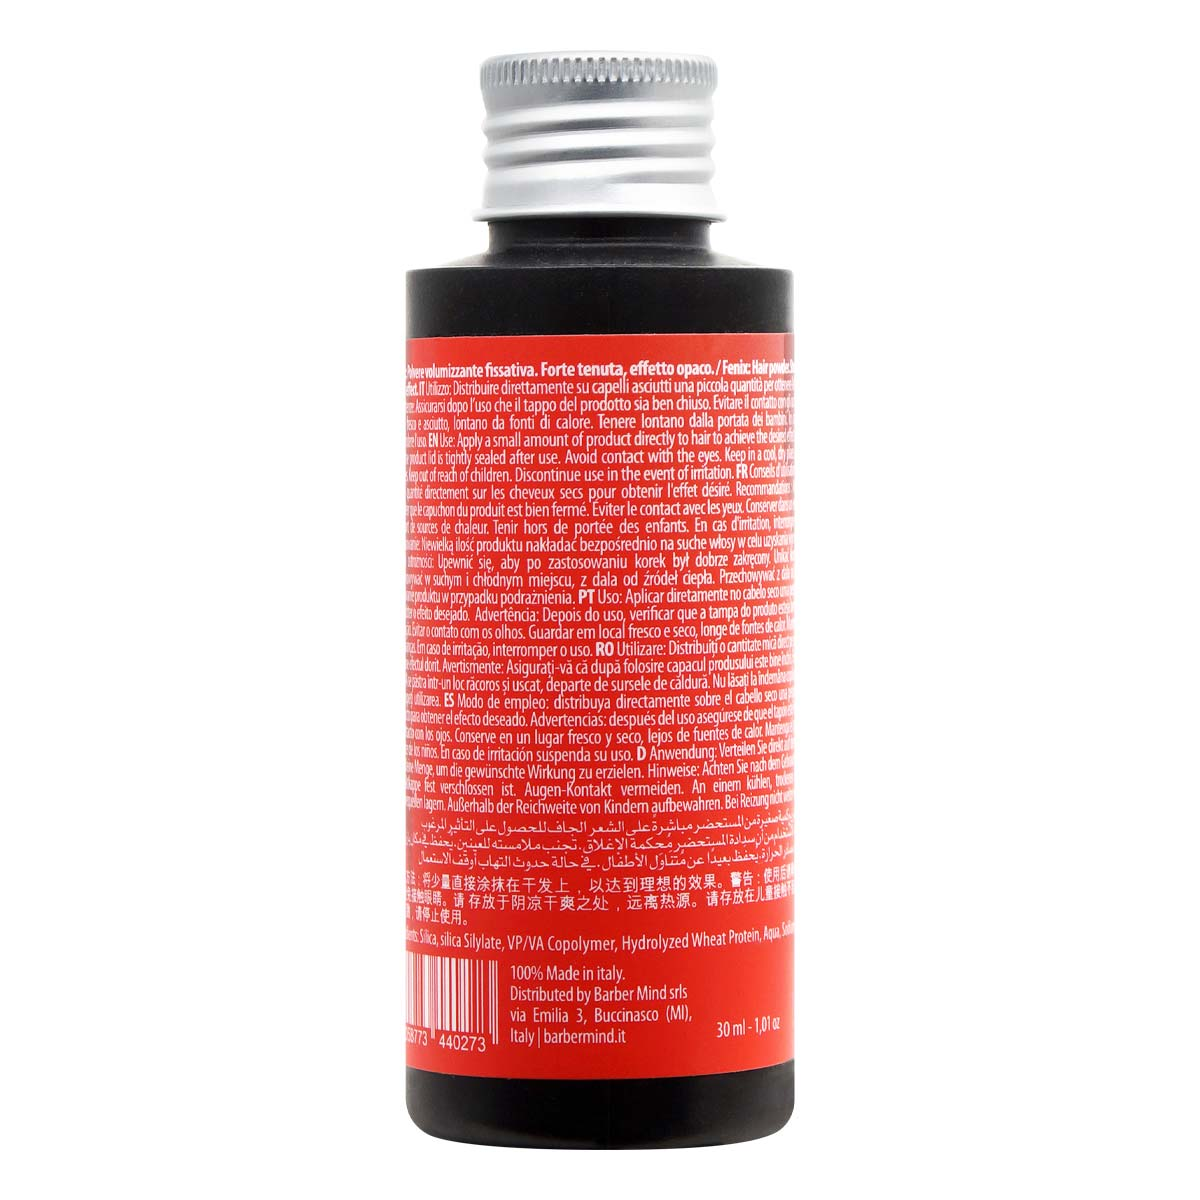 Barber Mind Fenix Hair Powder 30ml